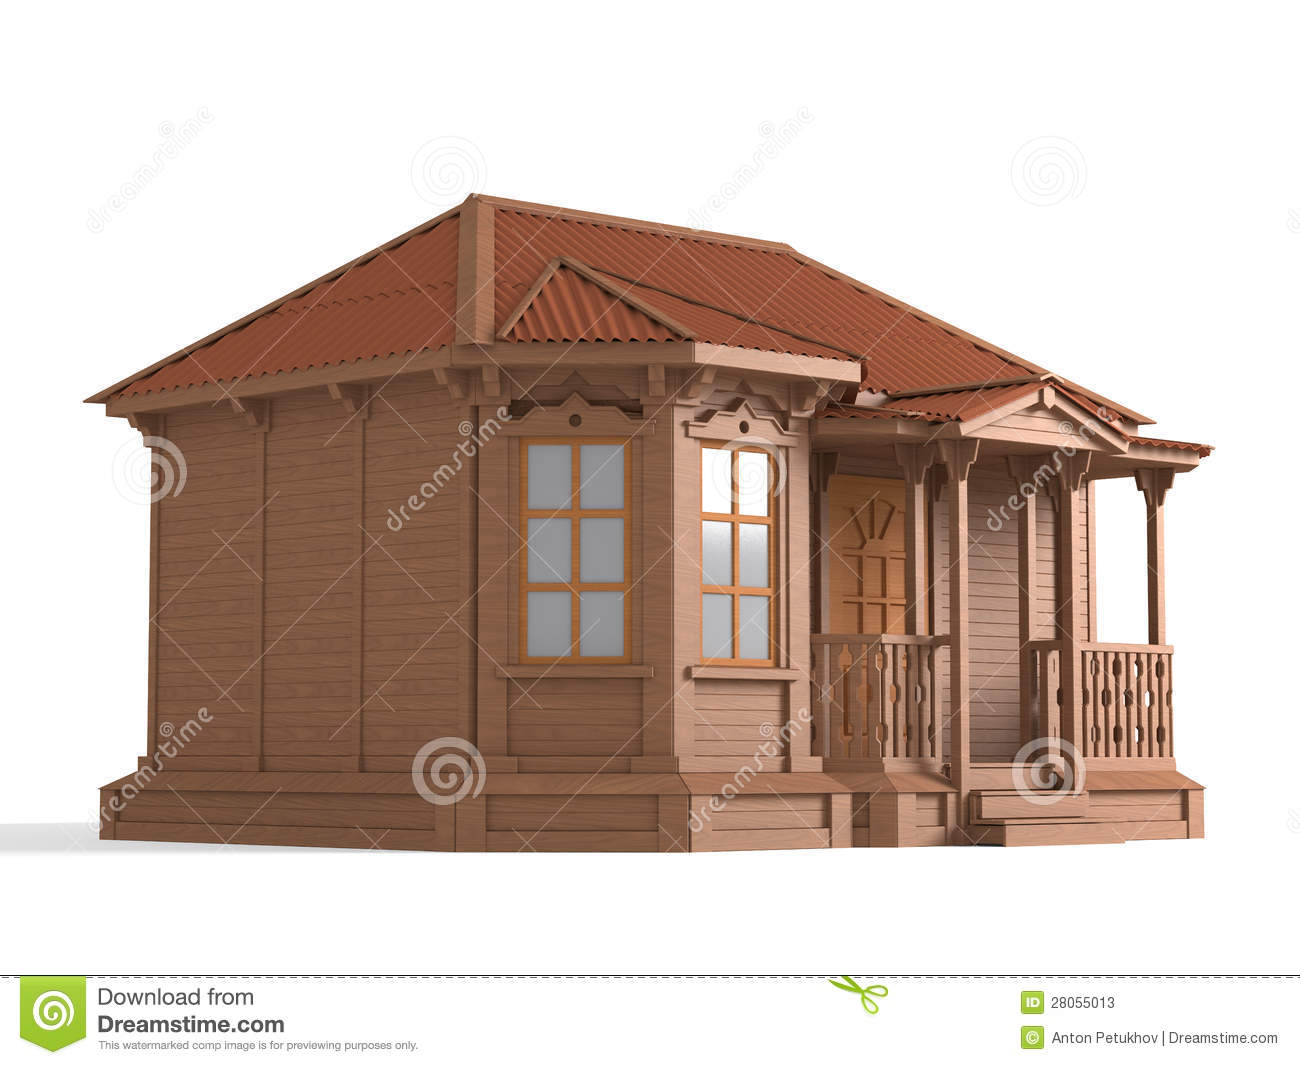 3d model of wooden house stock illustration image of 3d model house design